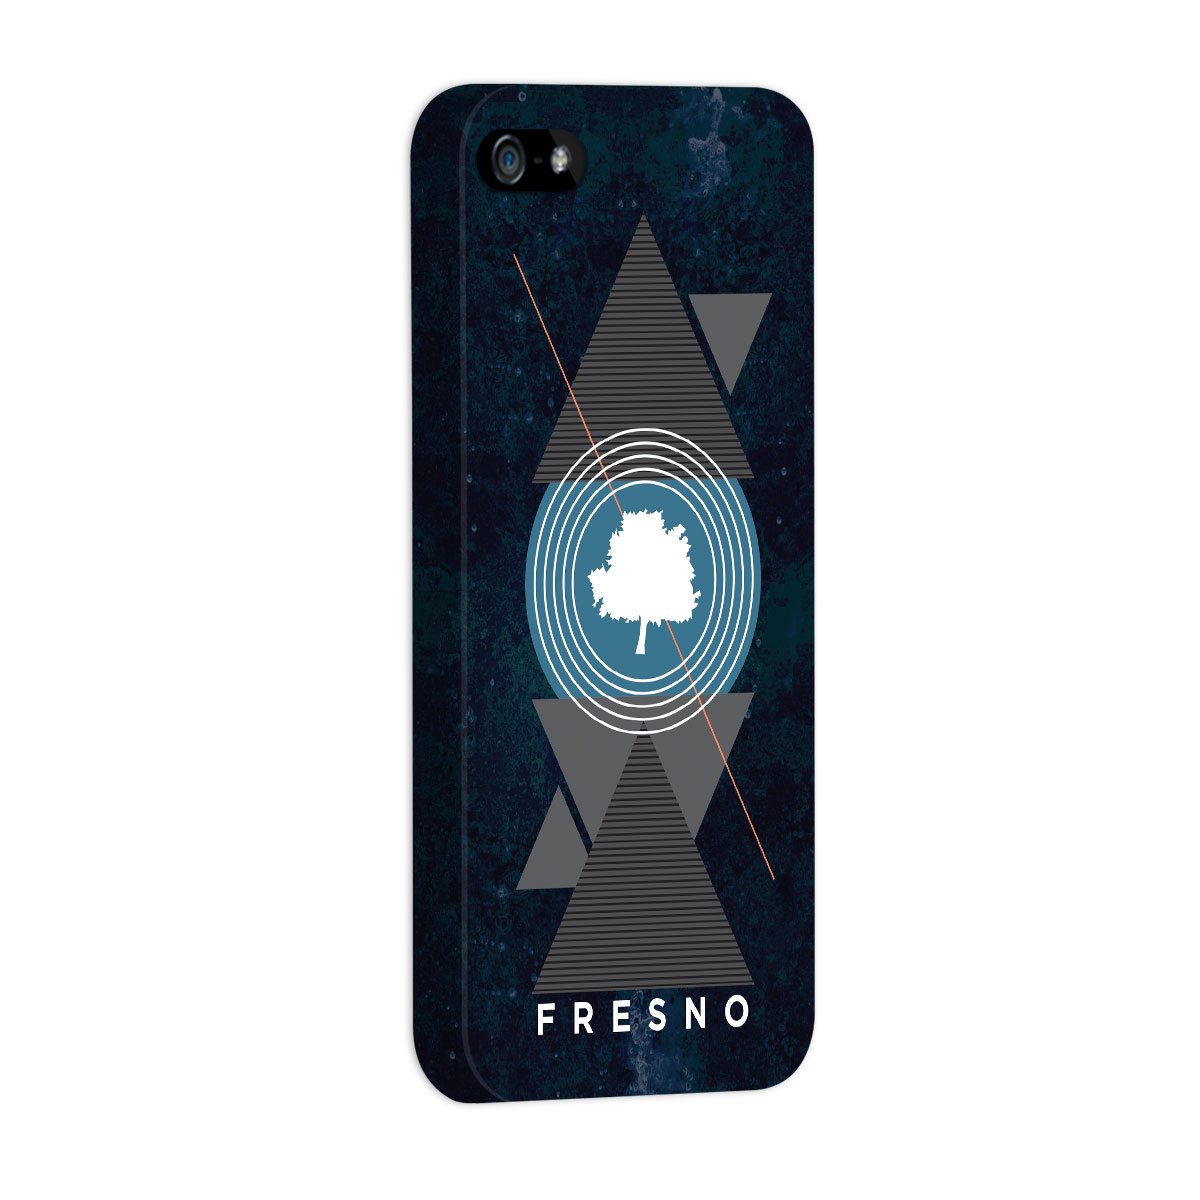 Capa para iPhone 5/5S Fresno Geometric